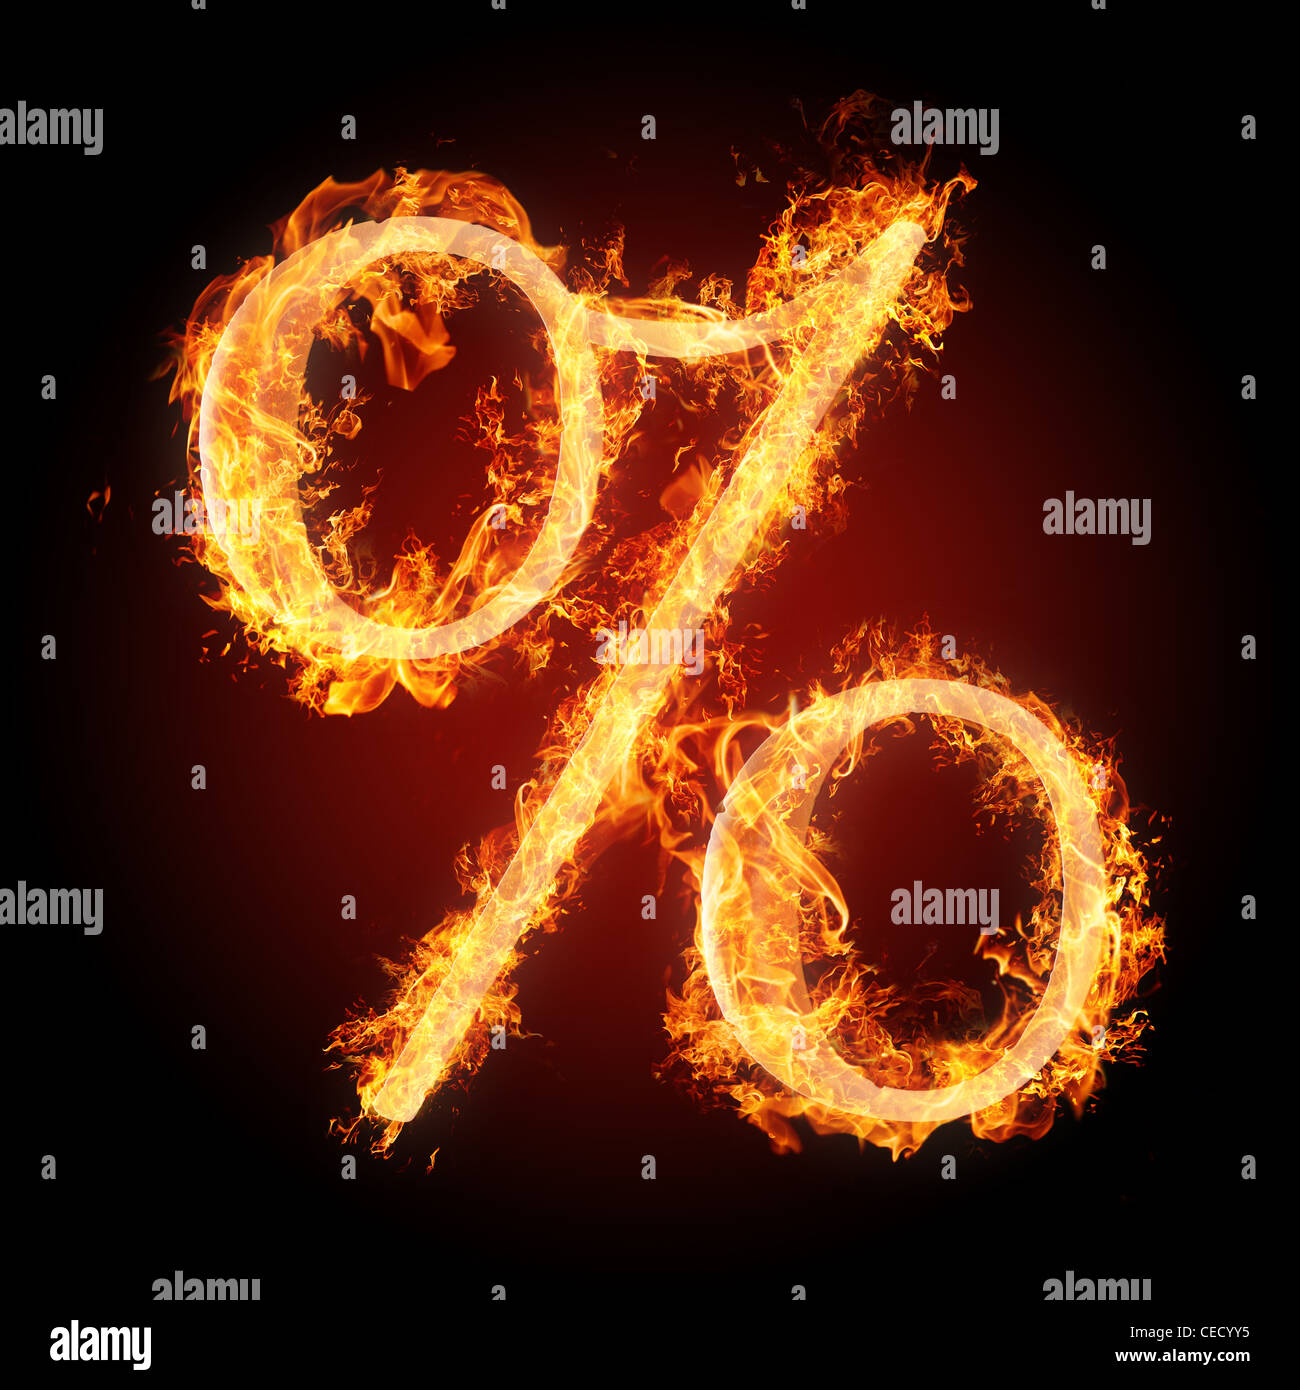 Letters and symbols in fire percent sign stock photo 43311273 alamy letters and symbols in fire percent sign thecheapjerseys Image collections